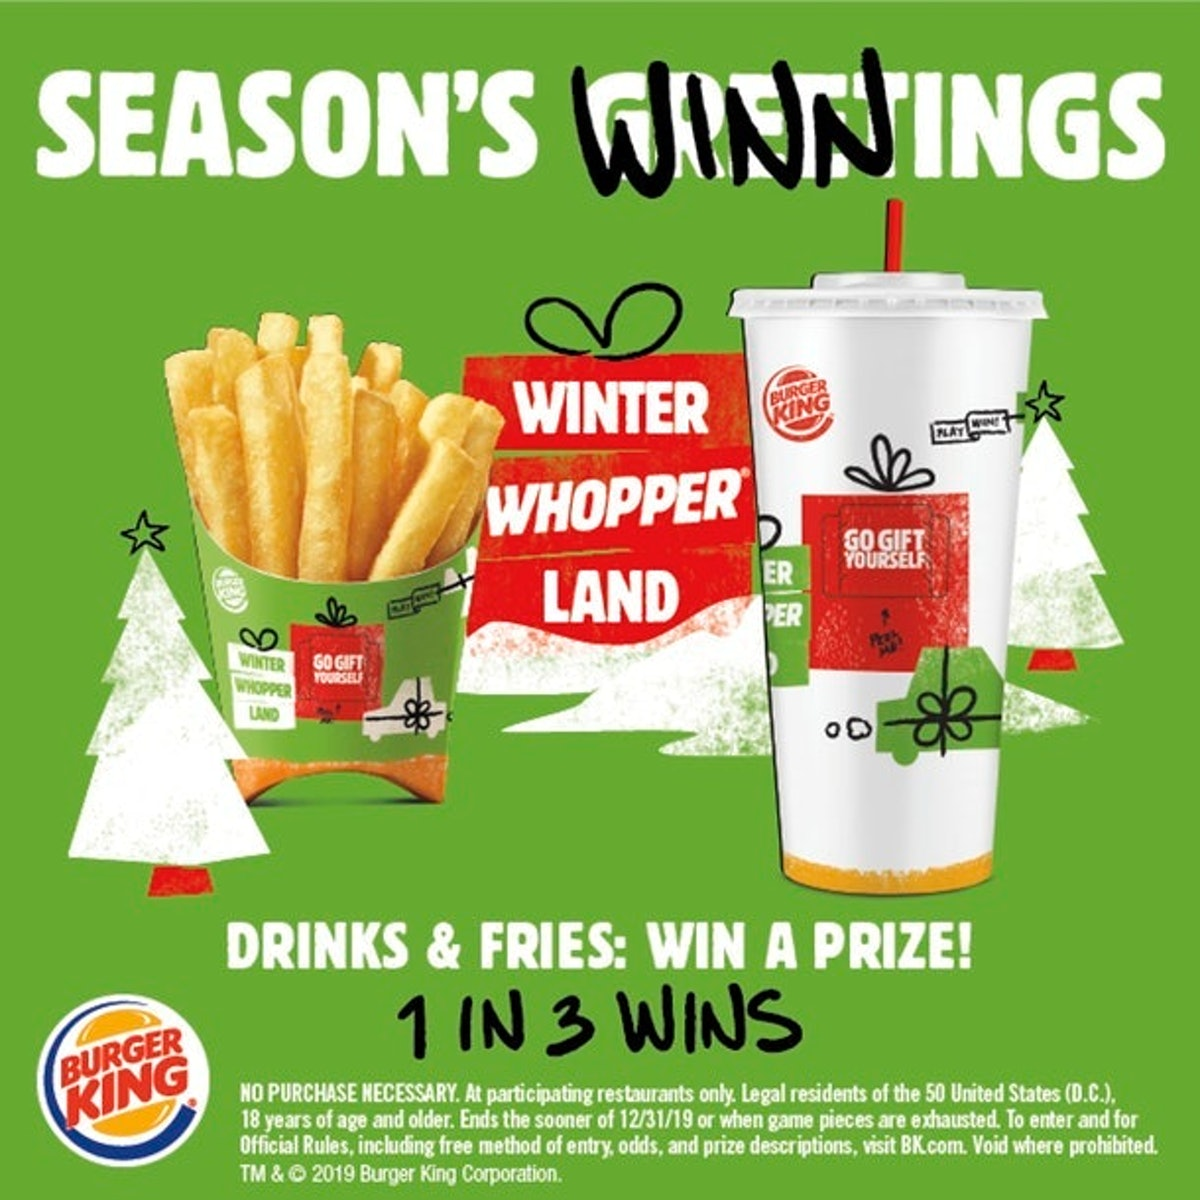 Burger King's Instant Win Winter Whopperland Grand Prize is $35,000, but you can win tons of other prizes if you enter.